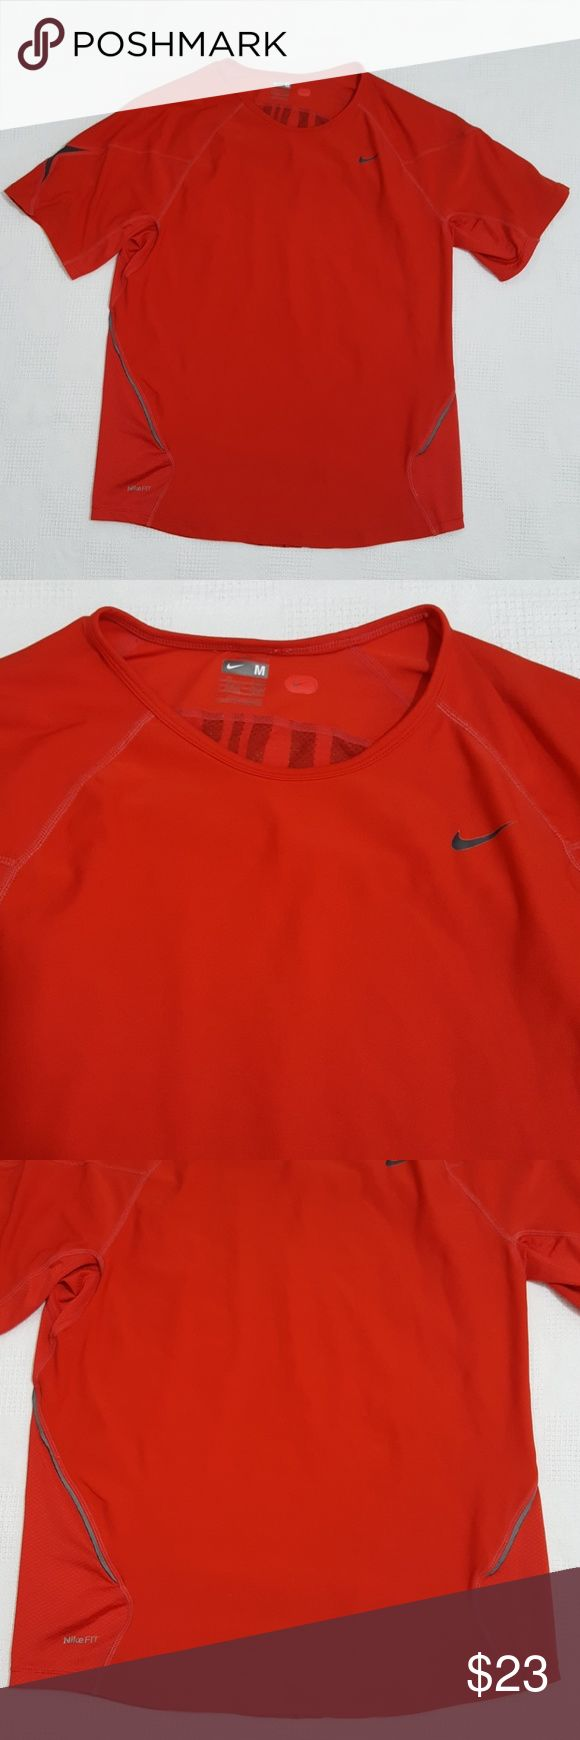 Nike Fit Dry Red Short Sleeve Top - Medium This is a size medium short sleeve dri-fit top from Nike. Normal wear, please see last photo for a few spots near back of neckline. No holes or tears. Great for working out, running, playing soccer or other high impact sport. 178cm.  Bundle & save.  8107 Nike Shirts Tees - Short Sleeve